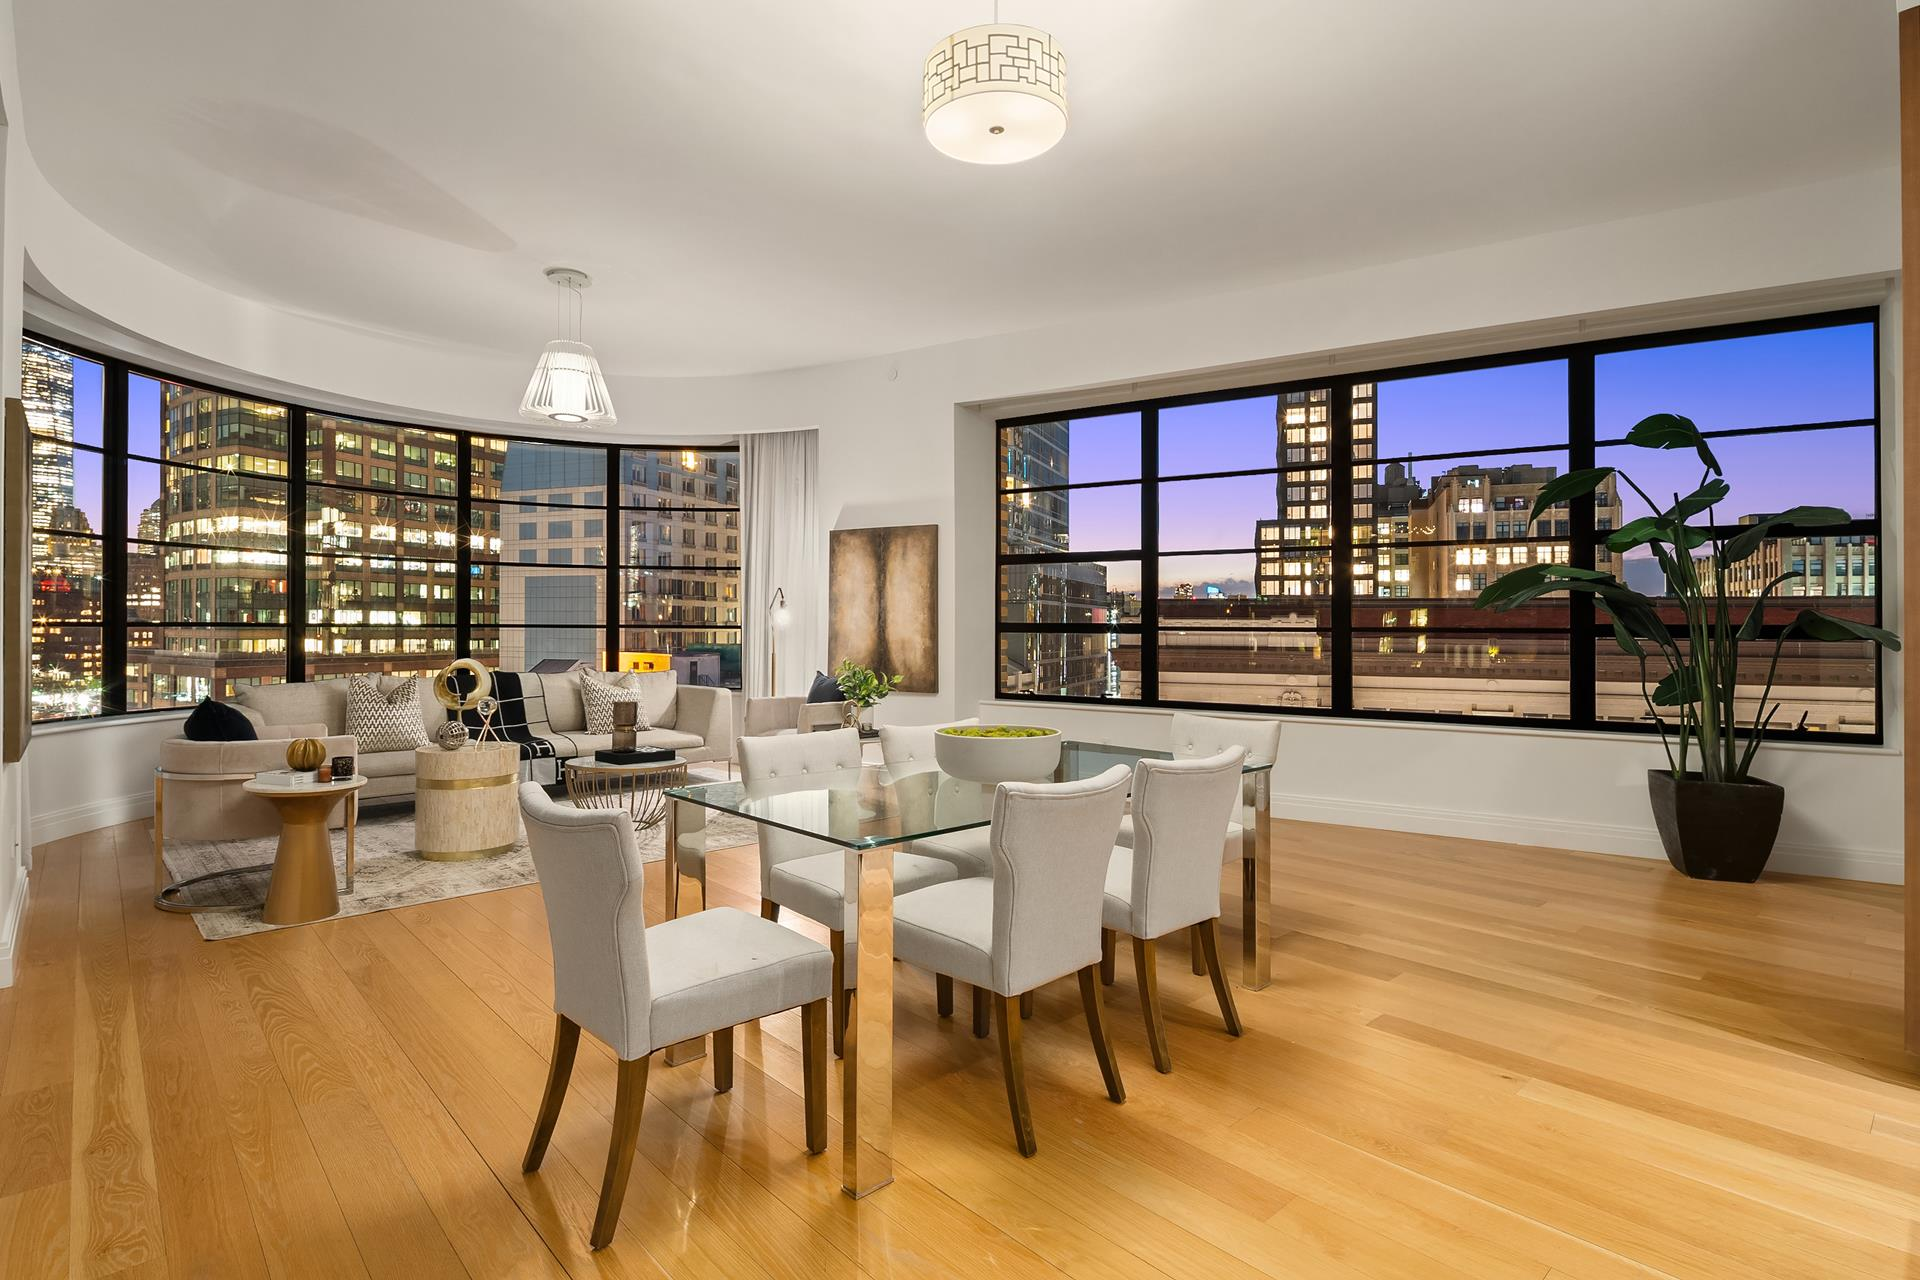 This 2,950-square foot 3-bedroom, 3.5-bath full-floor residence, with 404 square feet of private outdoor space, graces the signature south-facing prow of 10 Sullivan Street, where curved walls of oversized windows offer exceptional southern light, revealing   breathtaking Downtown panoramas. The private balcony provides substantial outdoor space with open northern city views. Beyond the residence's private elevator vestibule, a formal entry foyer leads to a central gallery, ideal for showcasing art, and then to   a magnificent great room with soaring 11' ceilings and three walls of floor-to-ceiling windows. The adjoining open Poliform kitchen with center island breakfast bar is appointed exquisitely with handsome walnut cabinetry and Lagano marble slab countertops   and backsplash, with top appliances by Sub-Zero, Miele, and Viking. The private master suite offers a generous walk-in closet and massive, windowed master bath, complete with motorized window shades. Elegantly clad in Dolomite white marble, this master bath   features a Macassar Ebony Poliform double vanity with Lefroy Brooks fixtures, freestanding soaking tub, separate steam shower, private water closet, and radiant heat floors. Two additional bedrooms are generously proportioned, each offering west-facing exposures   and en-suite full baths. A powder room and laundry room with sink and side-by-side washer and dryer complete this magnificent residence. Modern conveniences abound, including a Savant home automation system and motorized window shades, and radiant heat flooring   throughout. A sumptuous palette includes oil-rubbed Danish oak floors and oversized industrial-style windows, distinctive interior finishes inspired by SoHo's rich aesthetic heritage.